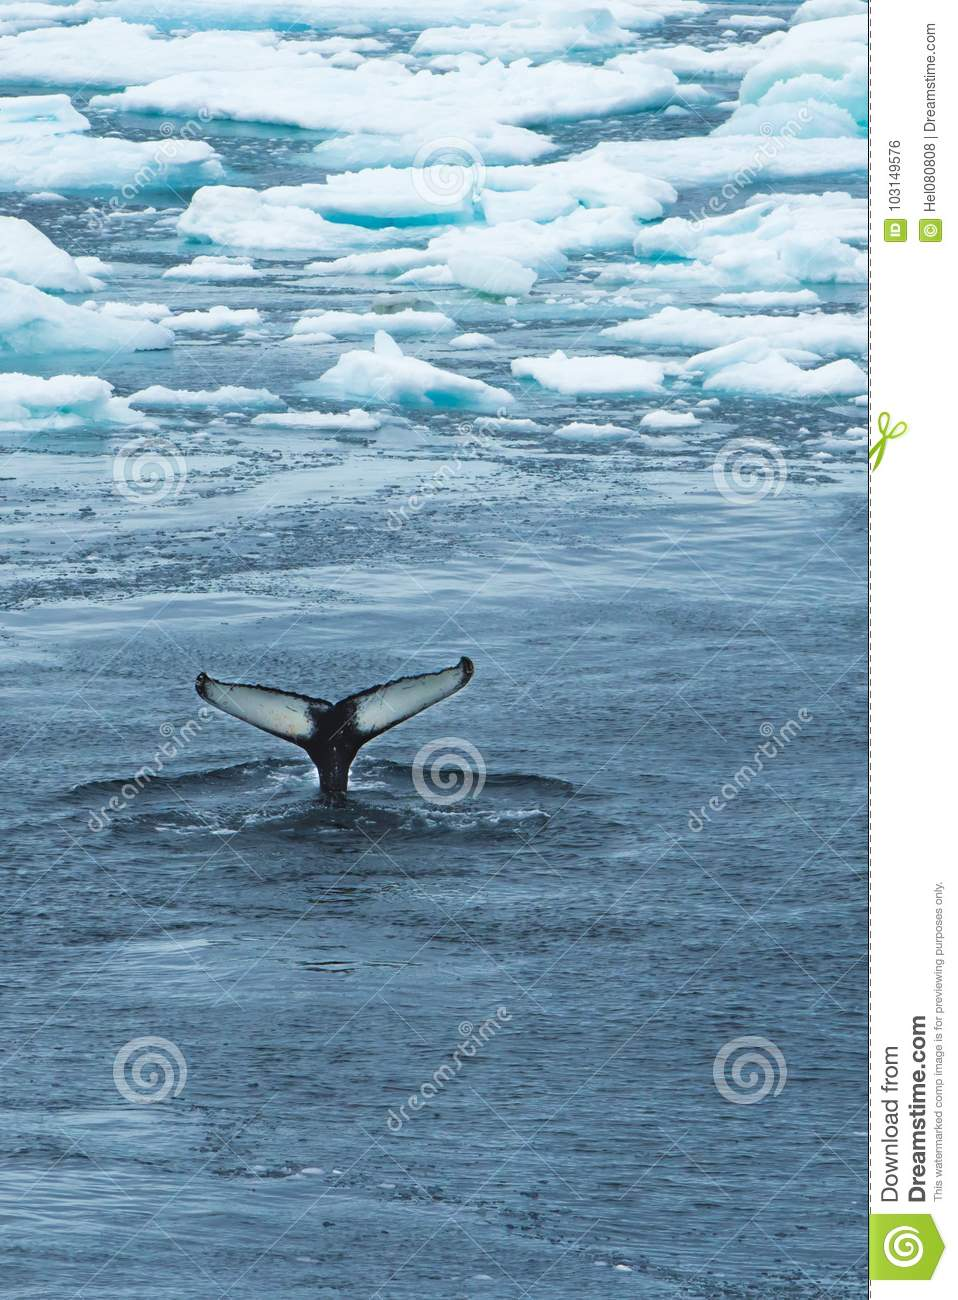 Whale Tail between Ice - Wallpaper